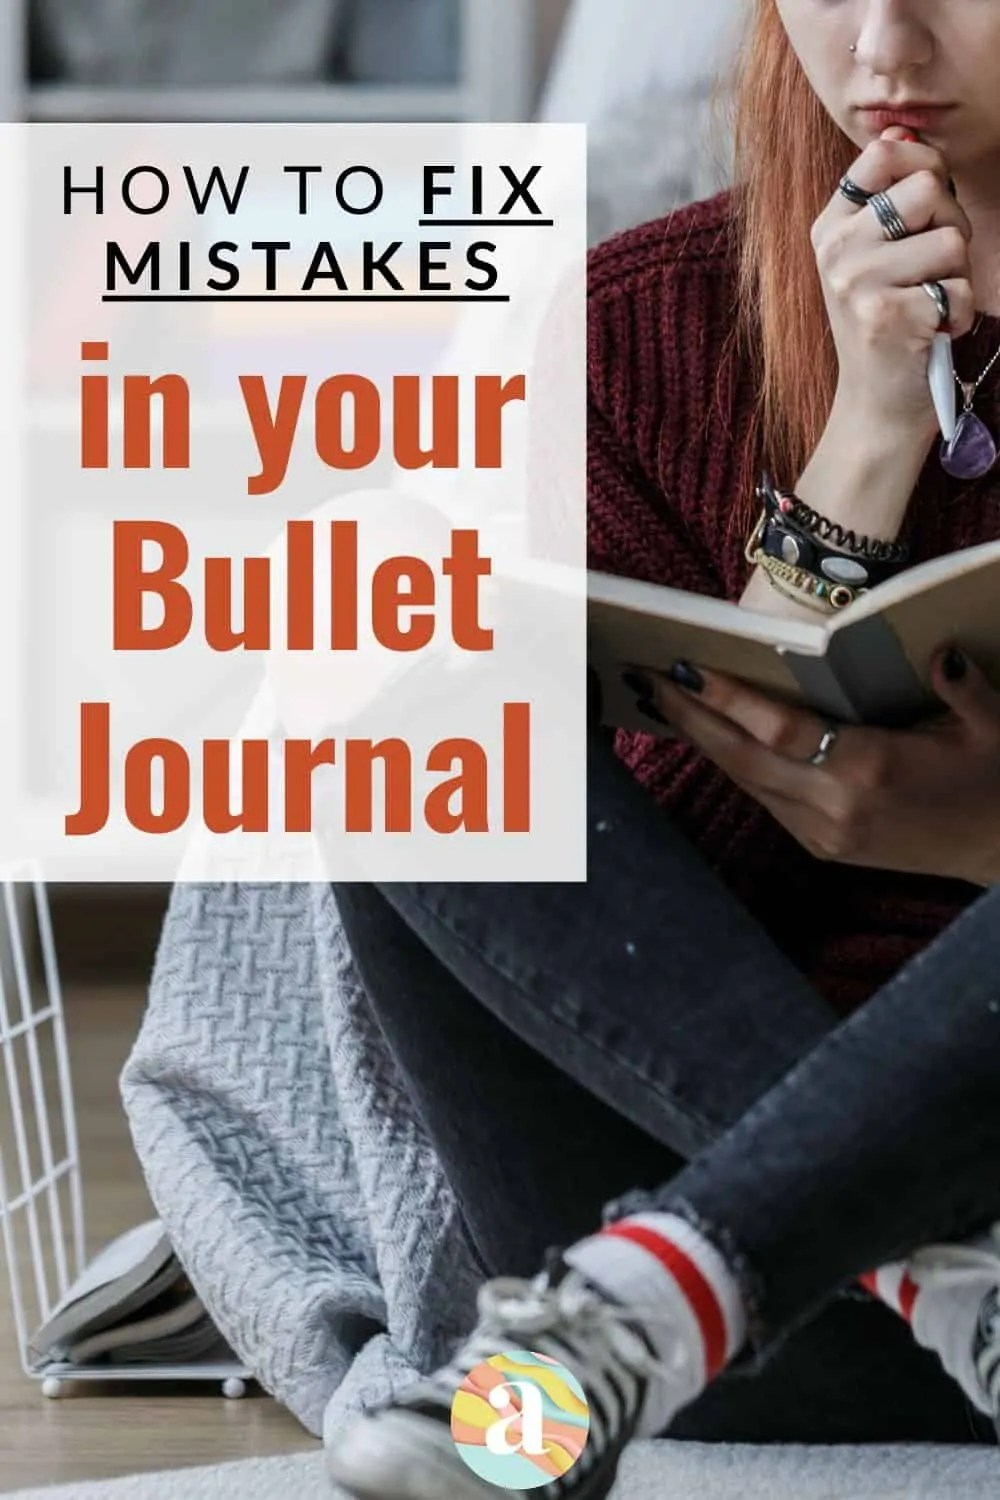 5 Ways to Fix Mistakes in Bullet Journal 9